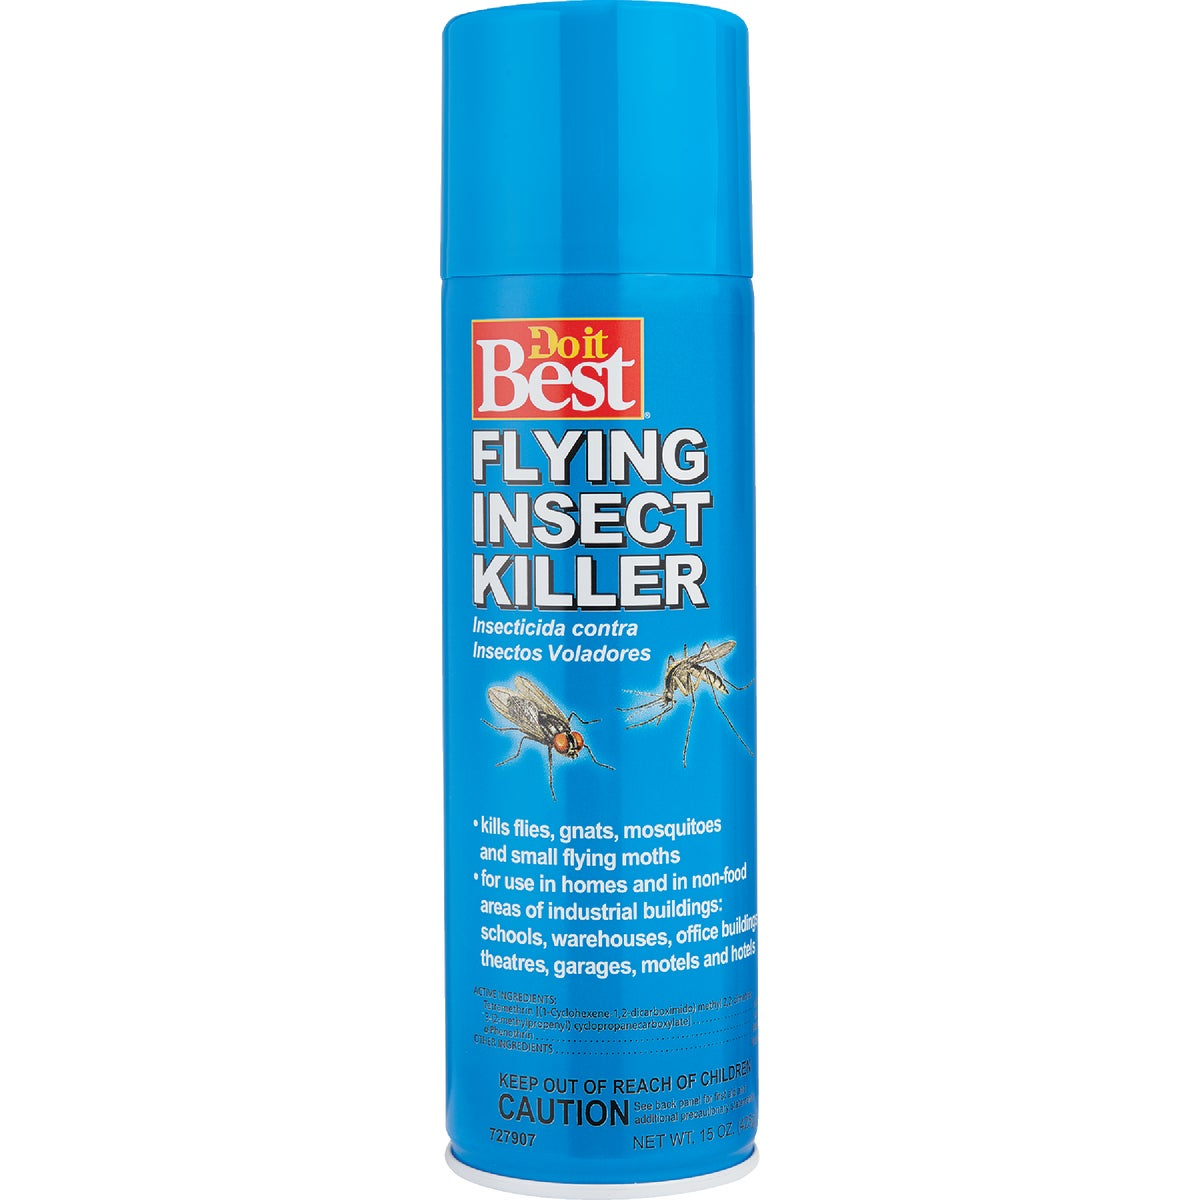 FLYING INSECT KILLER - 727907 by Maid Brands Inc